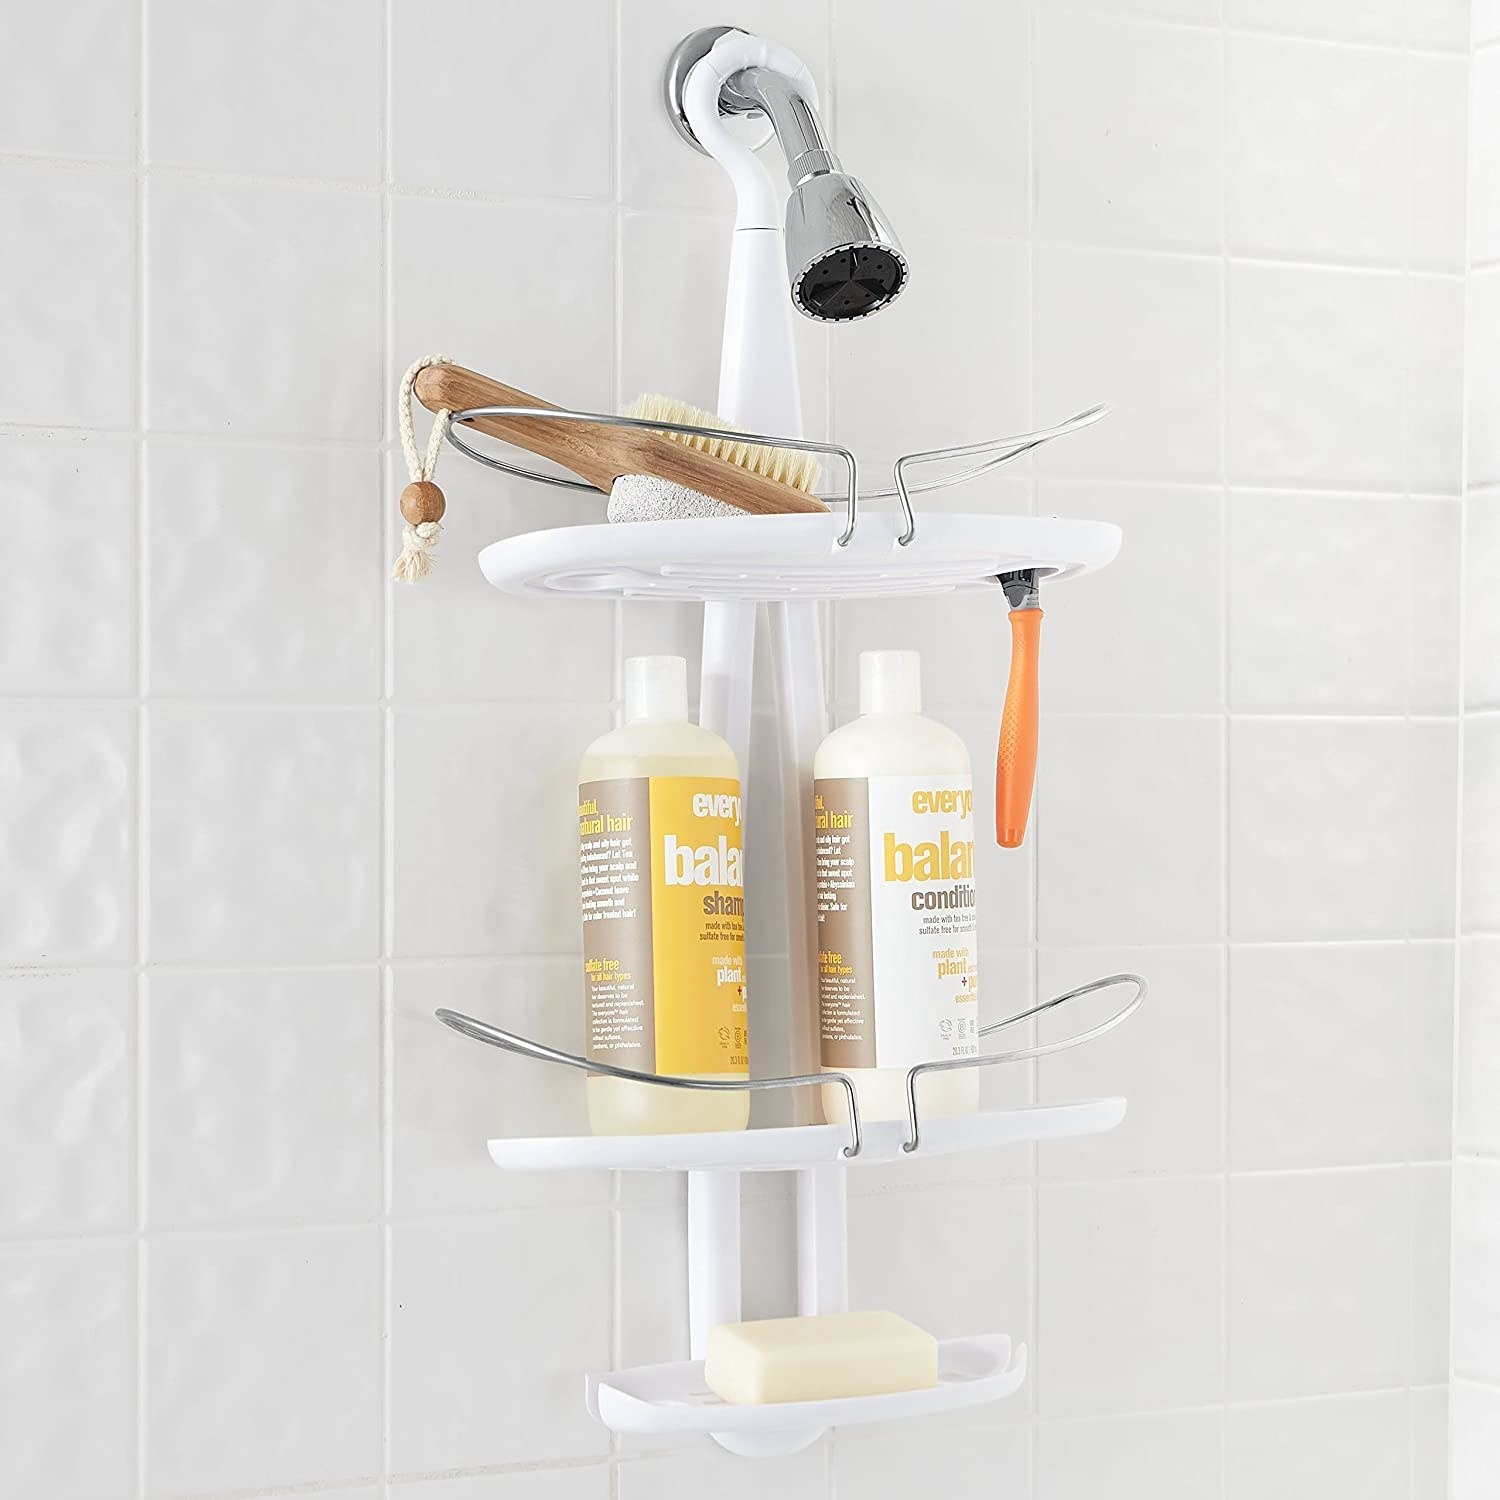 The shower caddy hanging onto a showerhead, pictured with bath products.